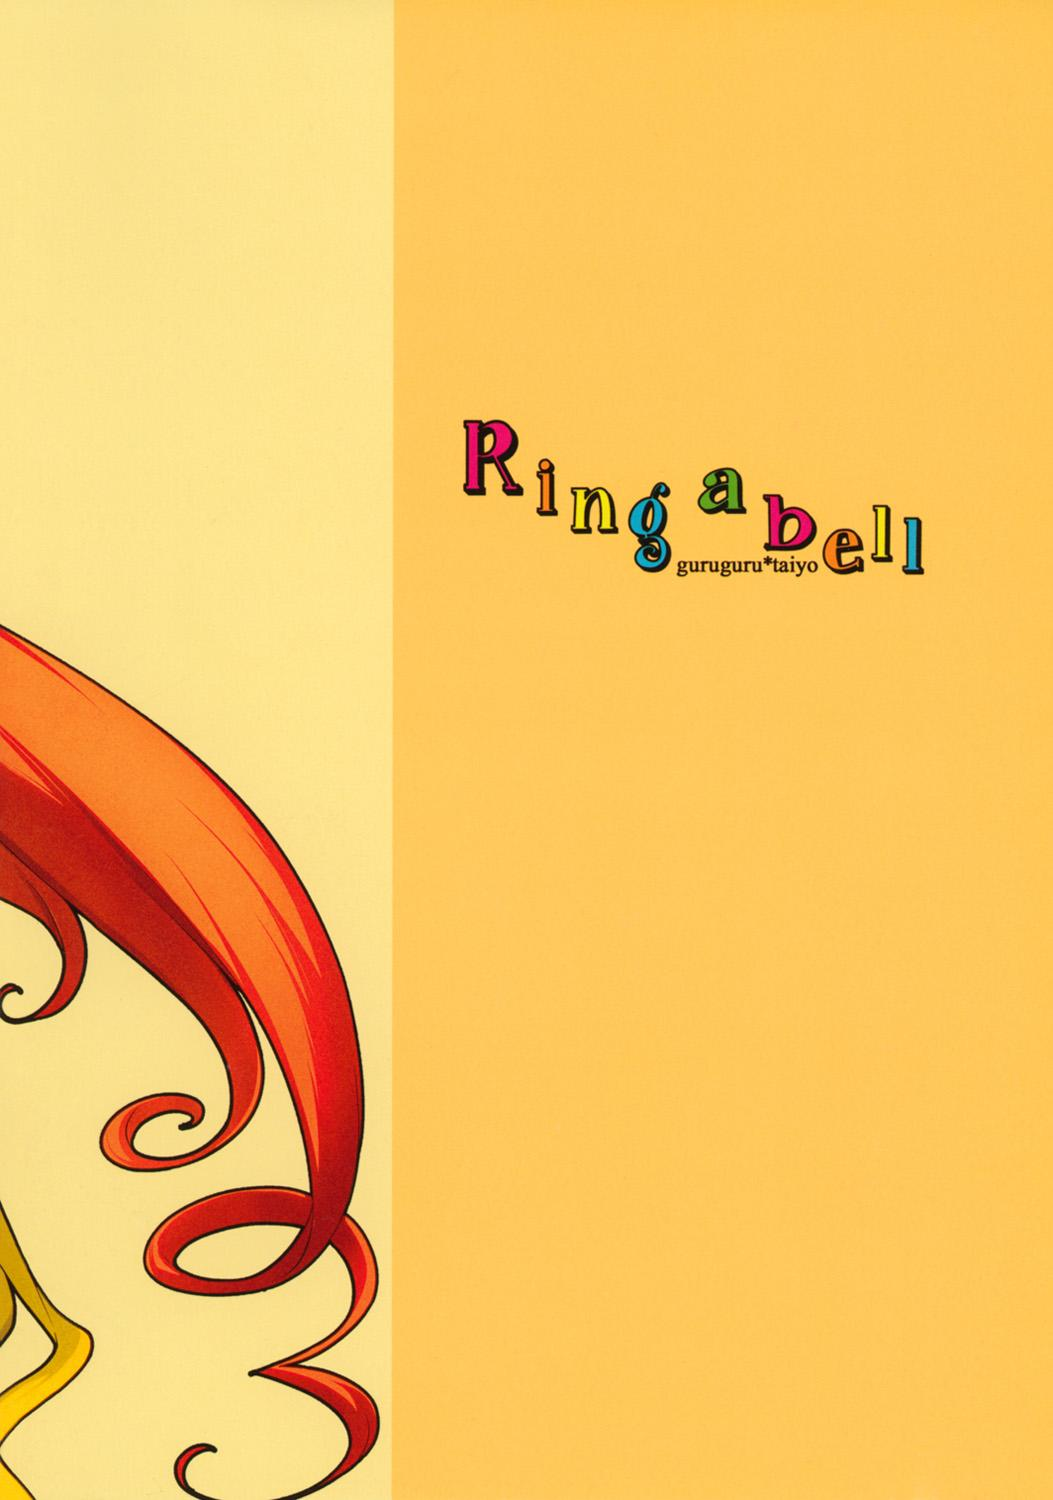 Ring a bell 19